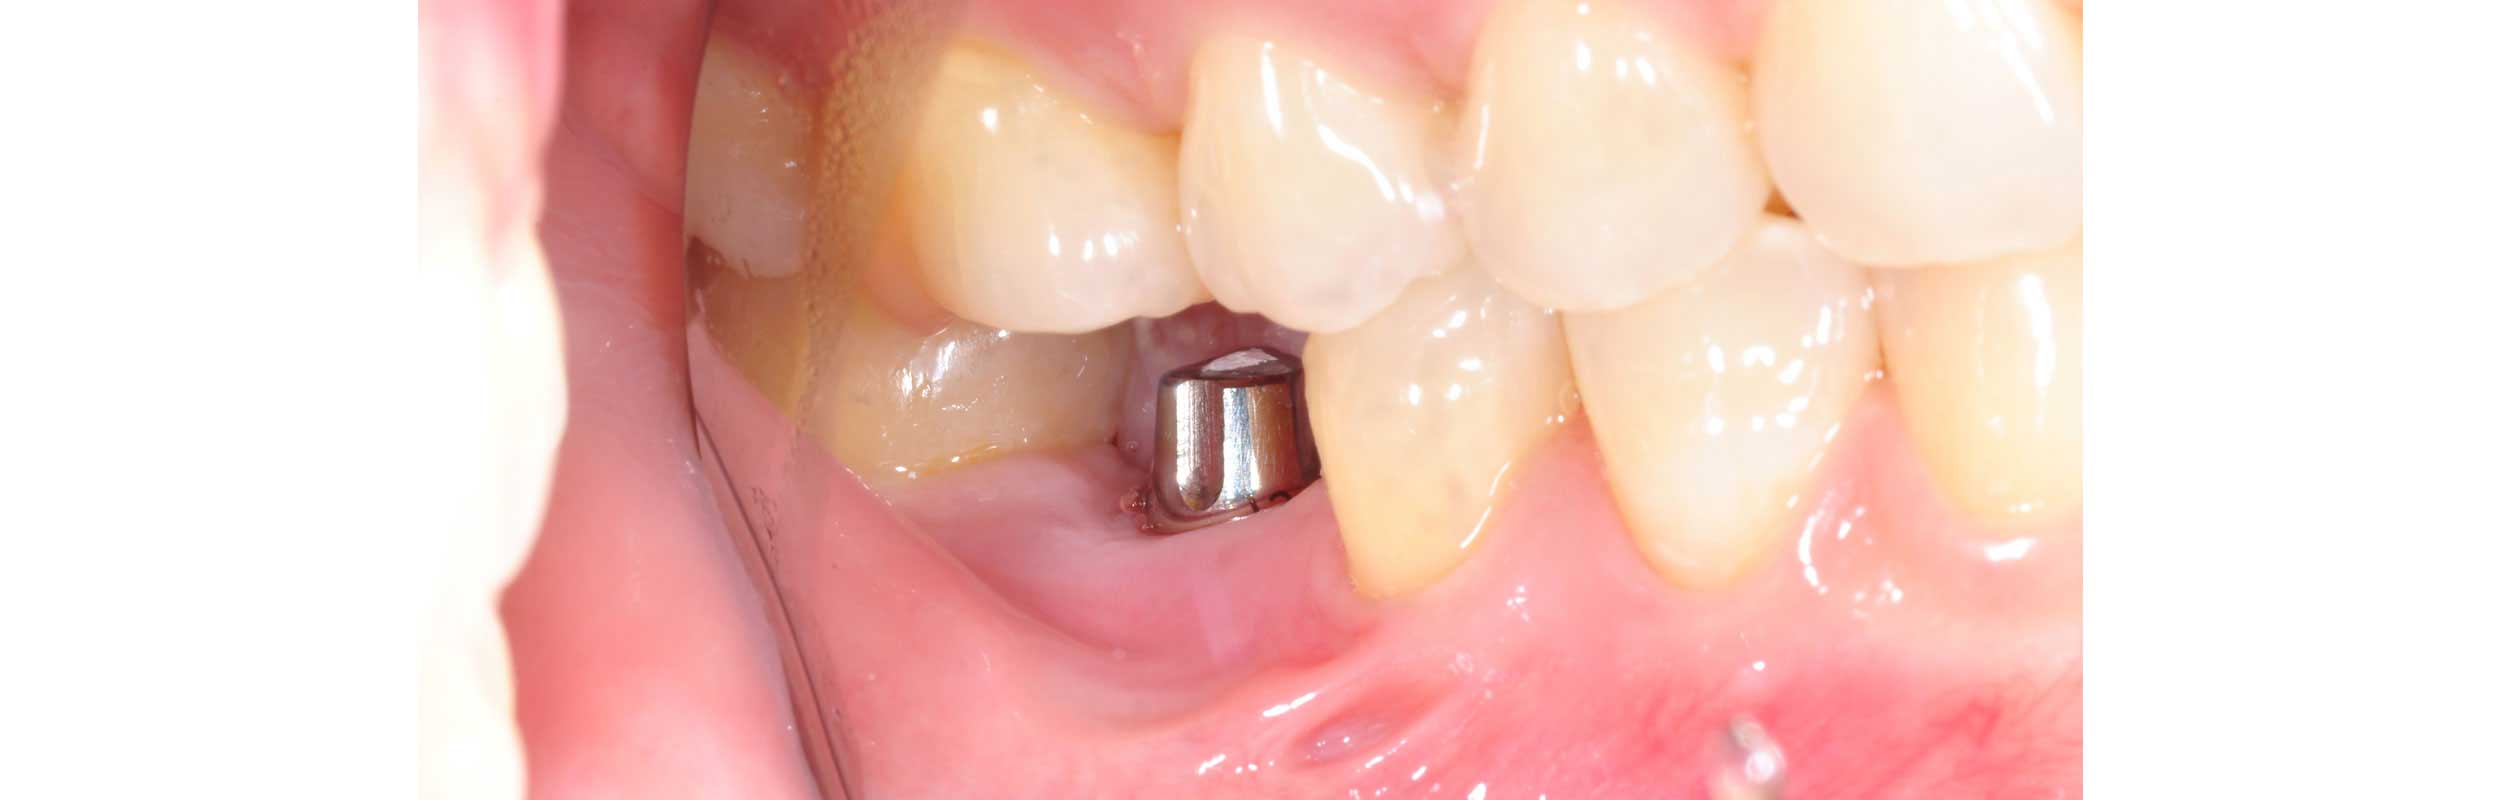 dental implants in Nashville, TN